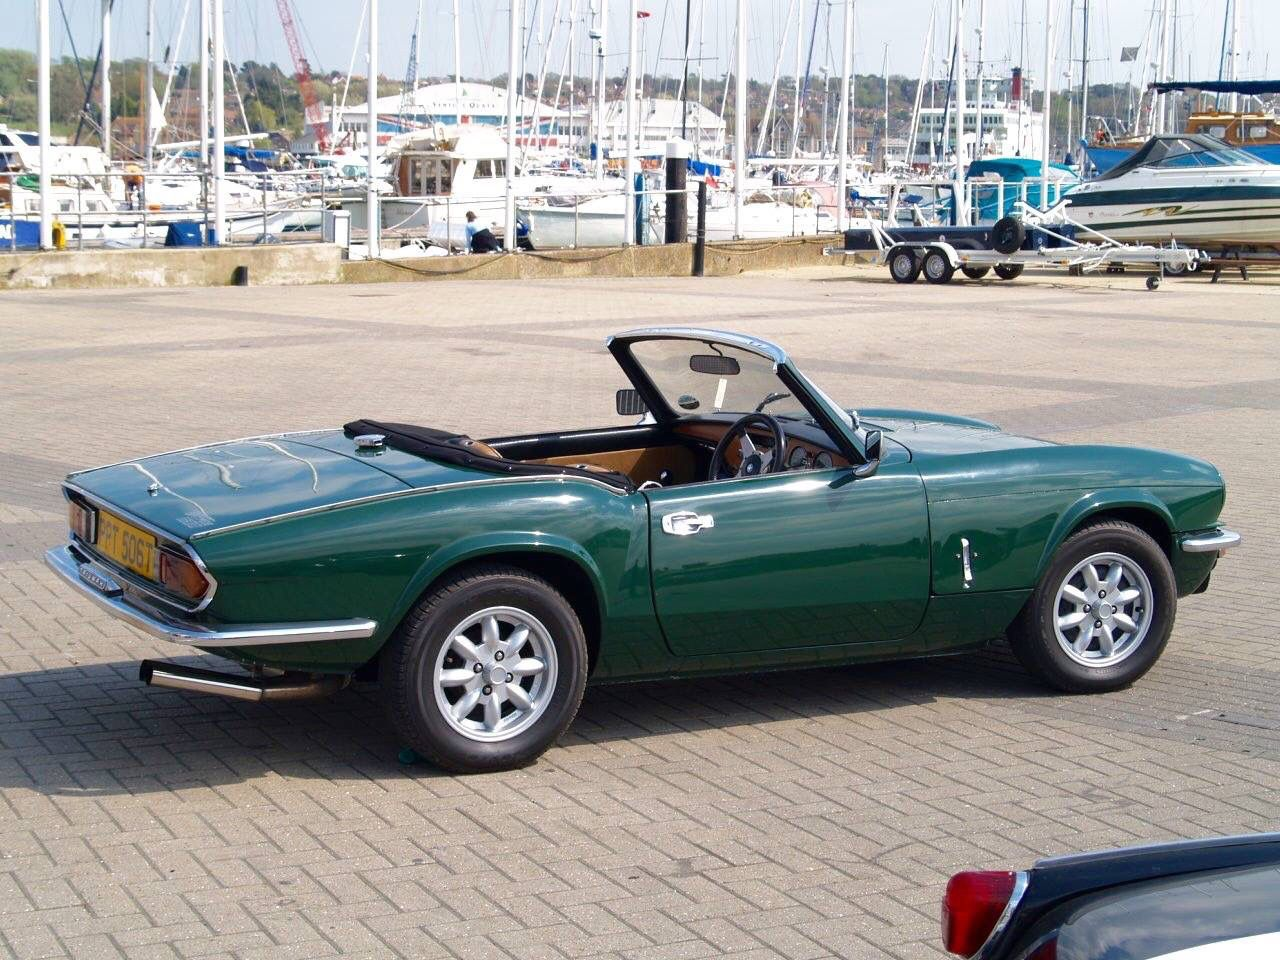 Triumph Spitfire BRG 1978 1500 Looking Fabulous on the Isle of Wight. www.tssc.org.uk. My first brand new car. I bought it the day before came to California in June of 1978.